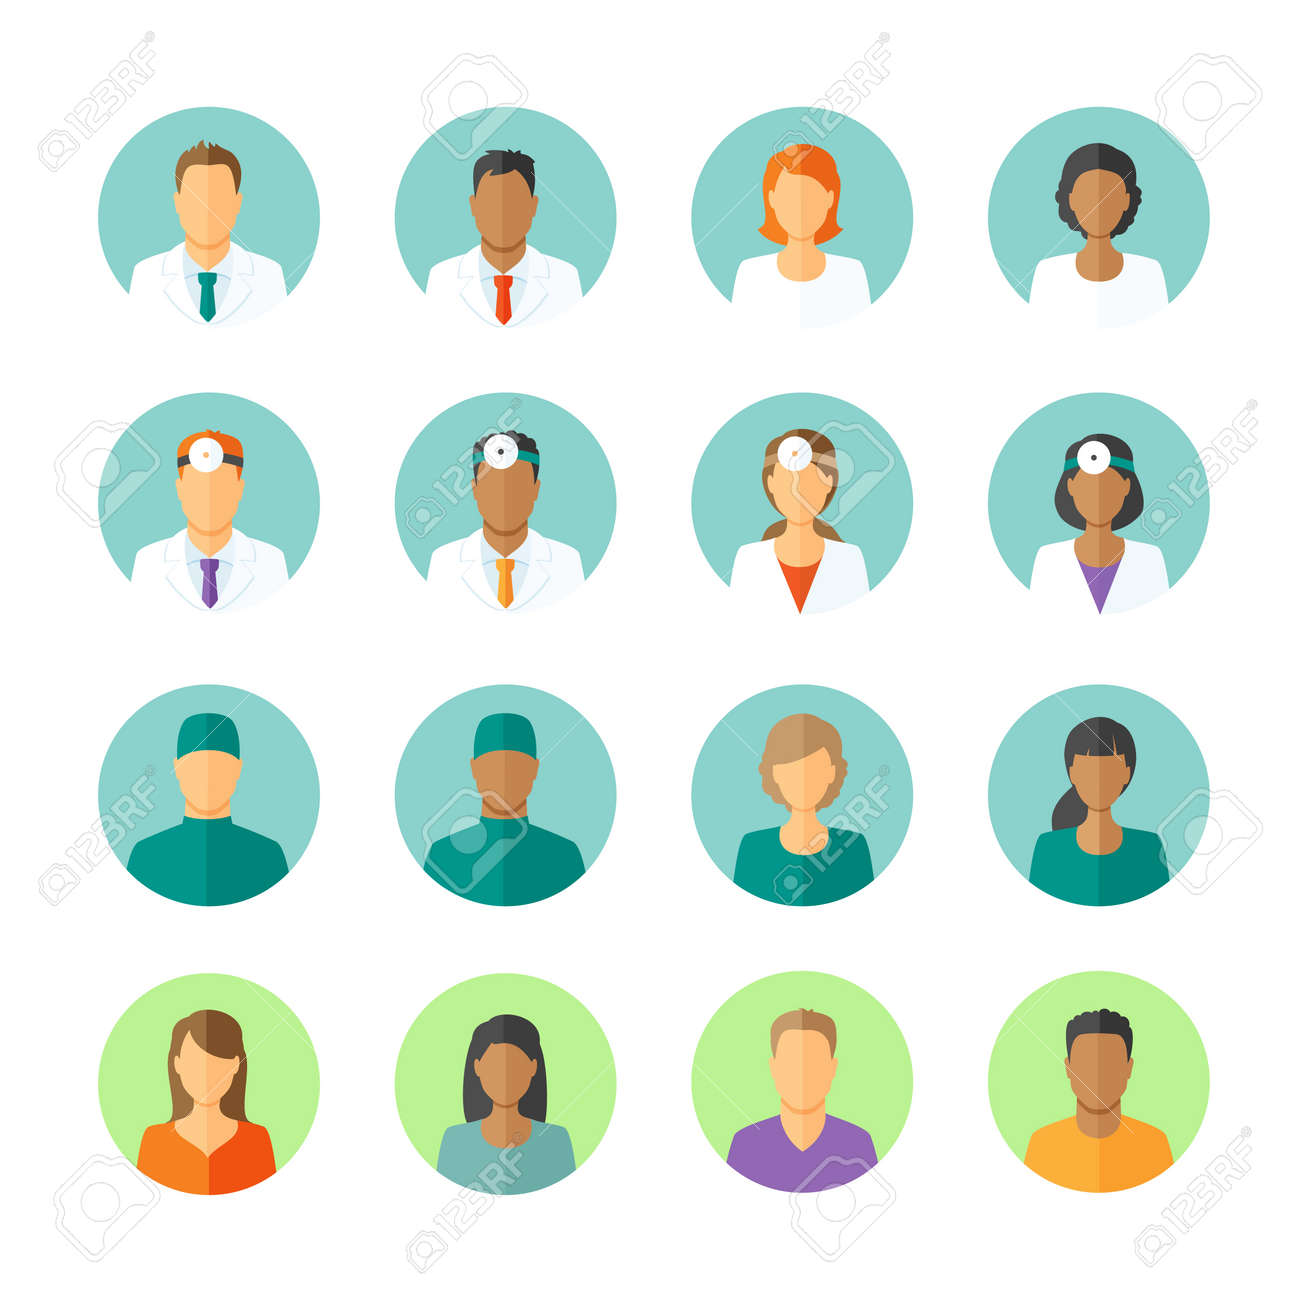 Set of round avatars different medical stuff like general doctor, therapist, surgeon and otolaryngologist. Also icons of patients for medical forum - 39380165